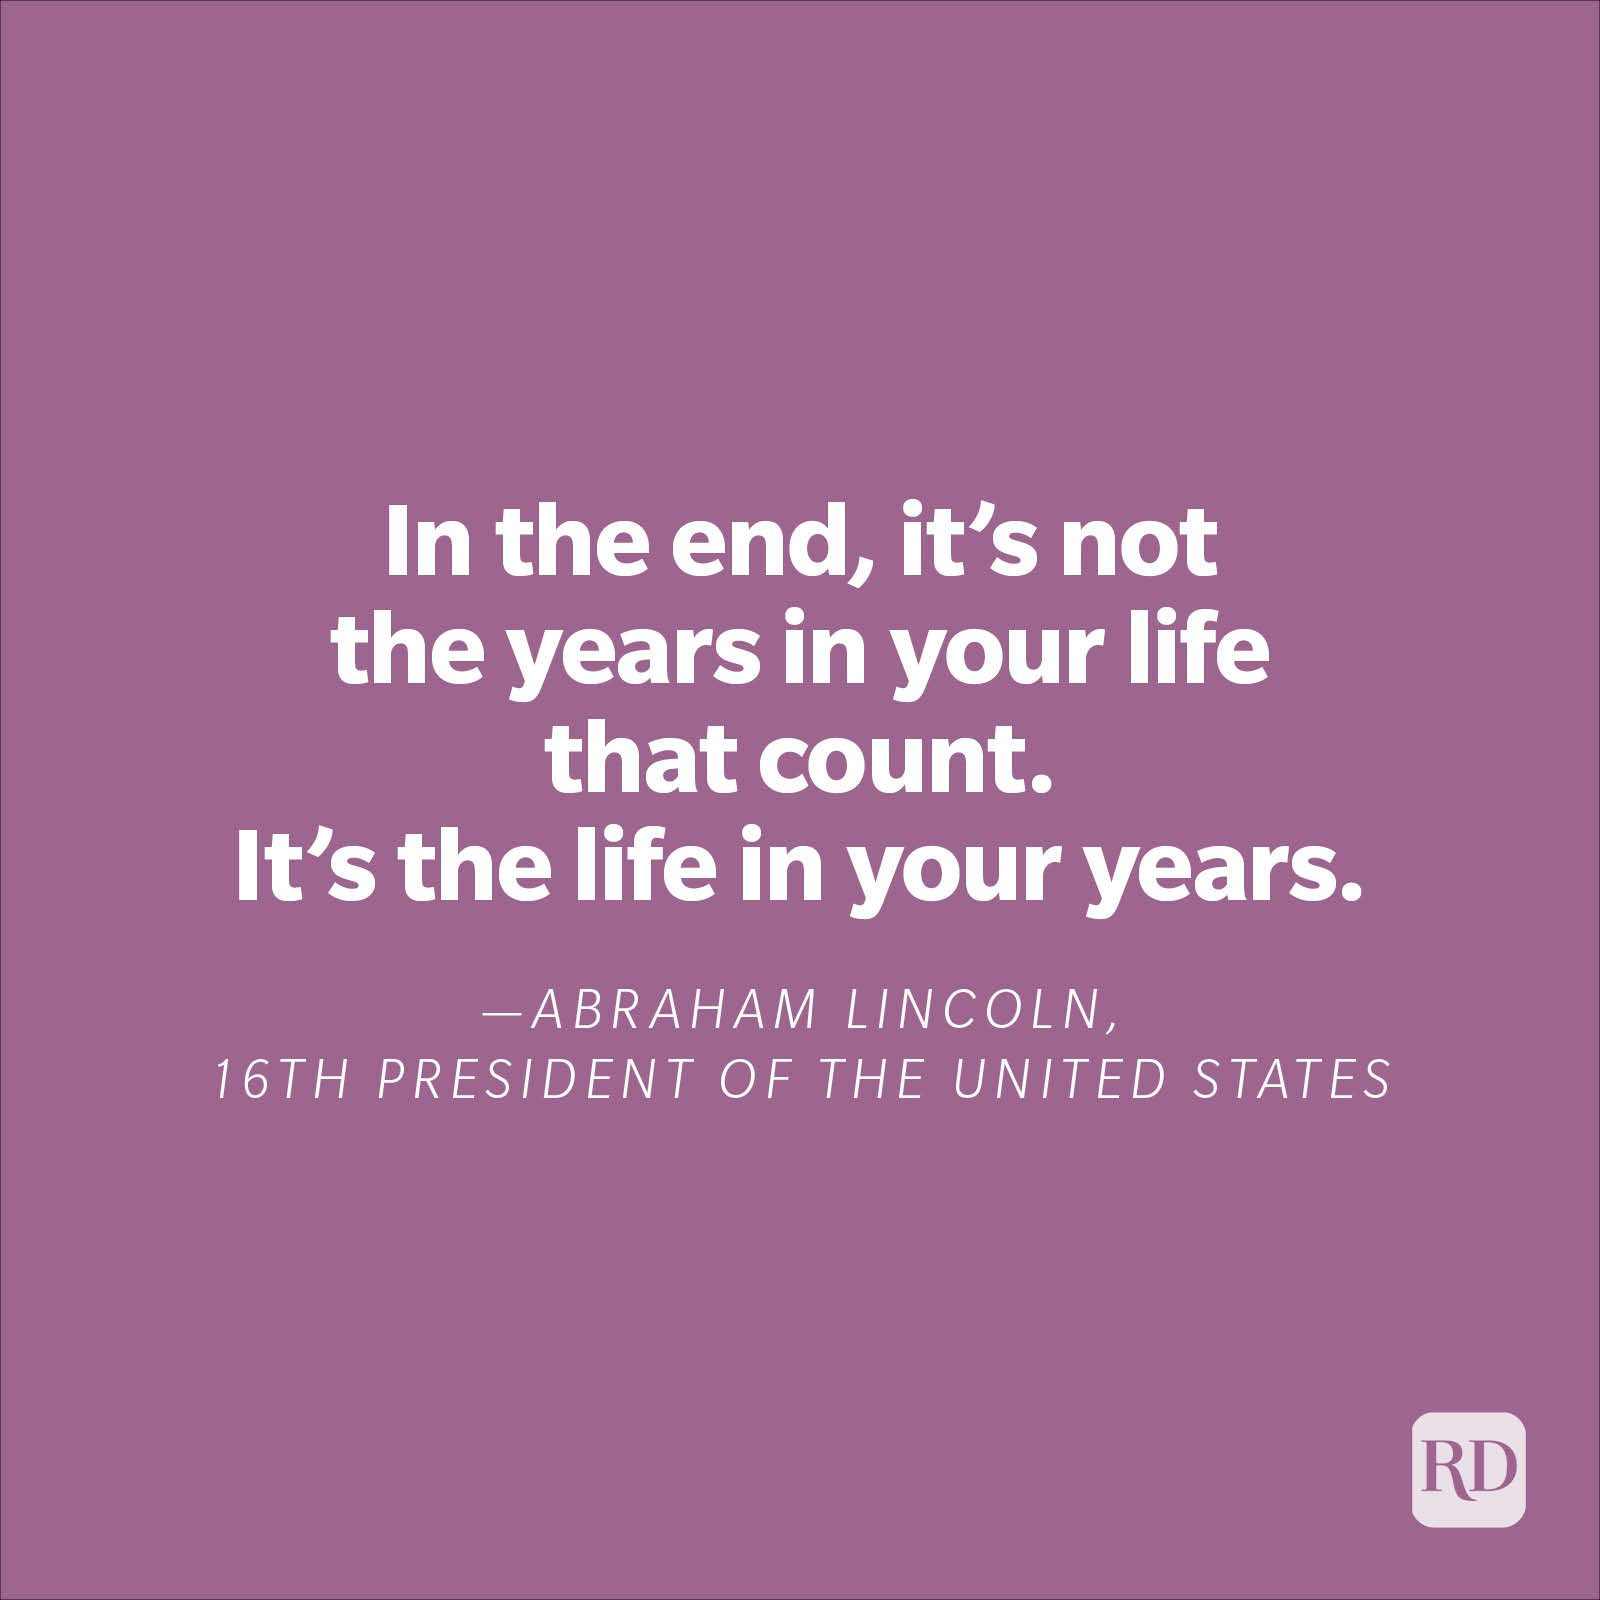 """""""In the end, it's not the years in your life that count. It's the life in your years."""" —Abraham Lincoln, 16th president of the United States"""